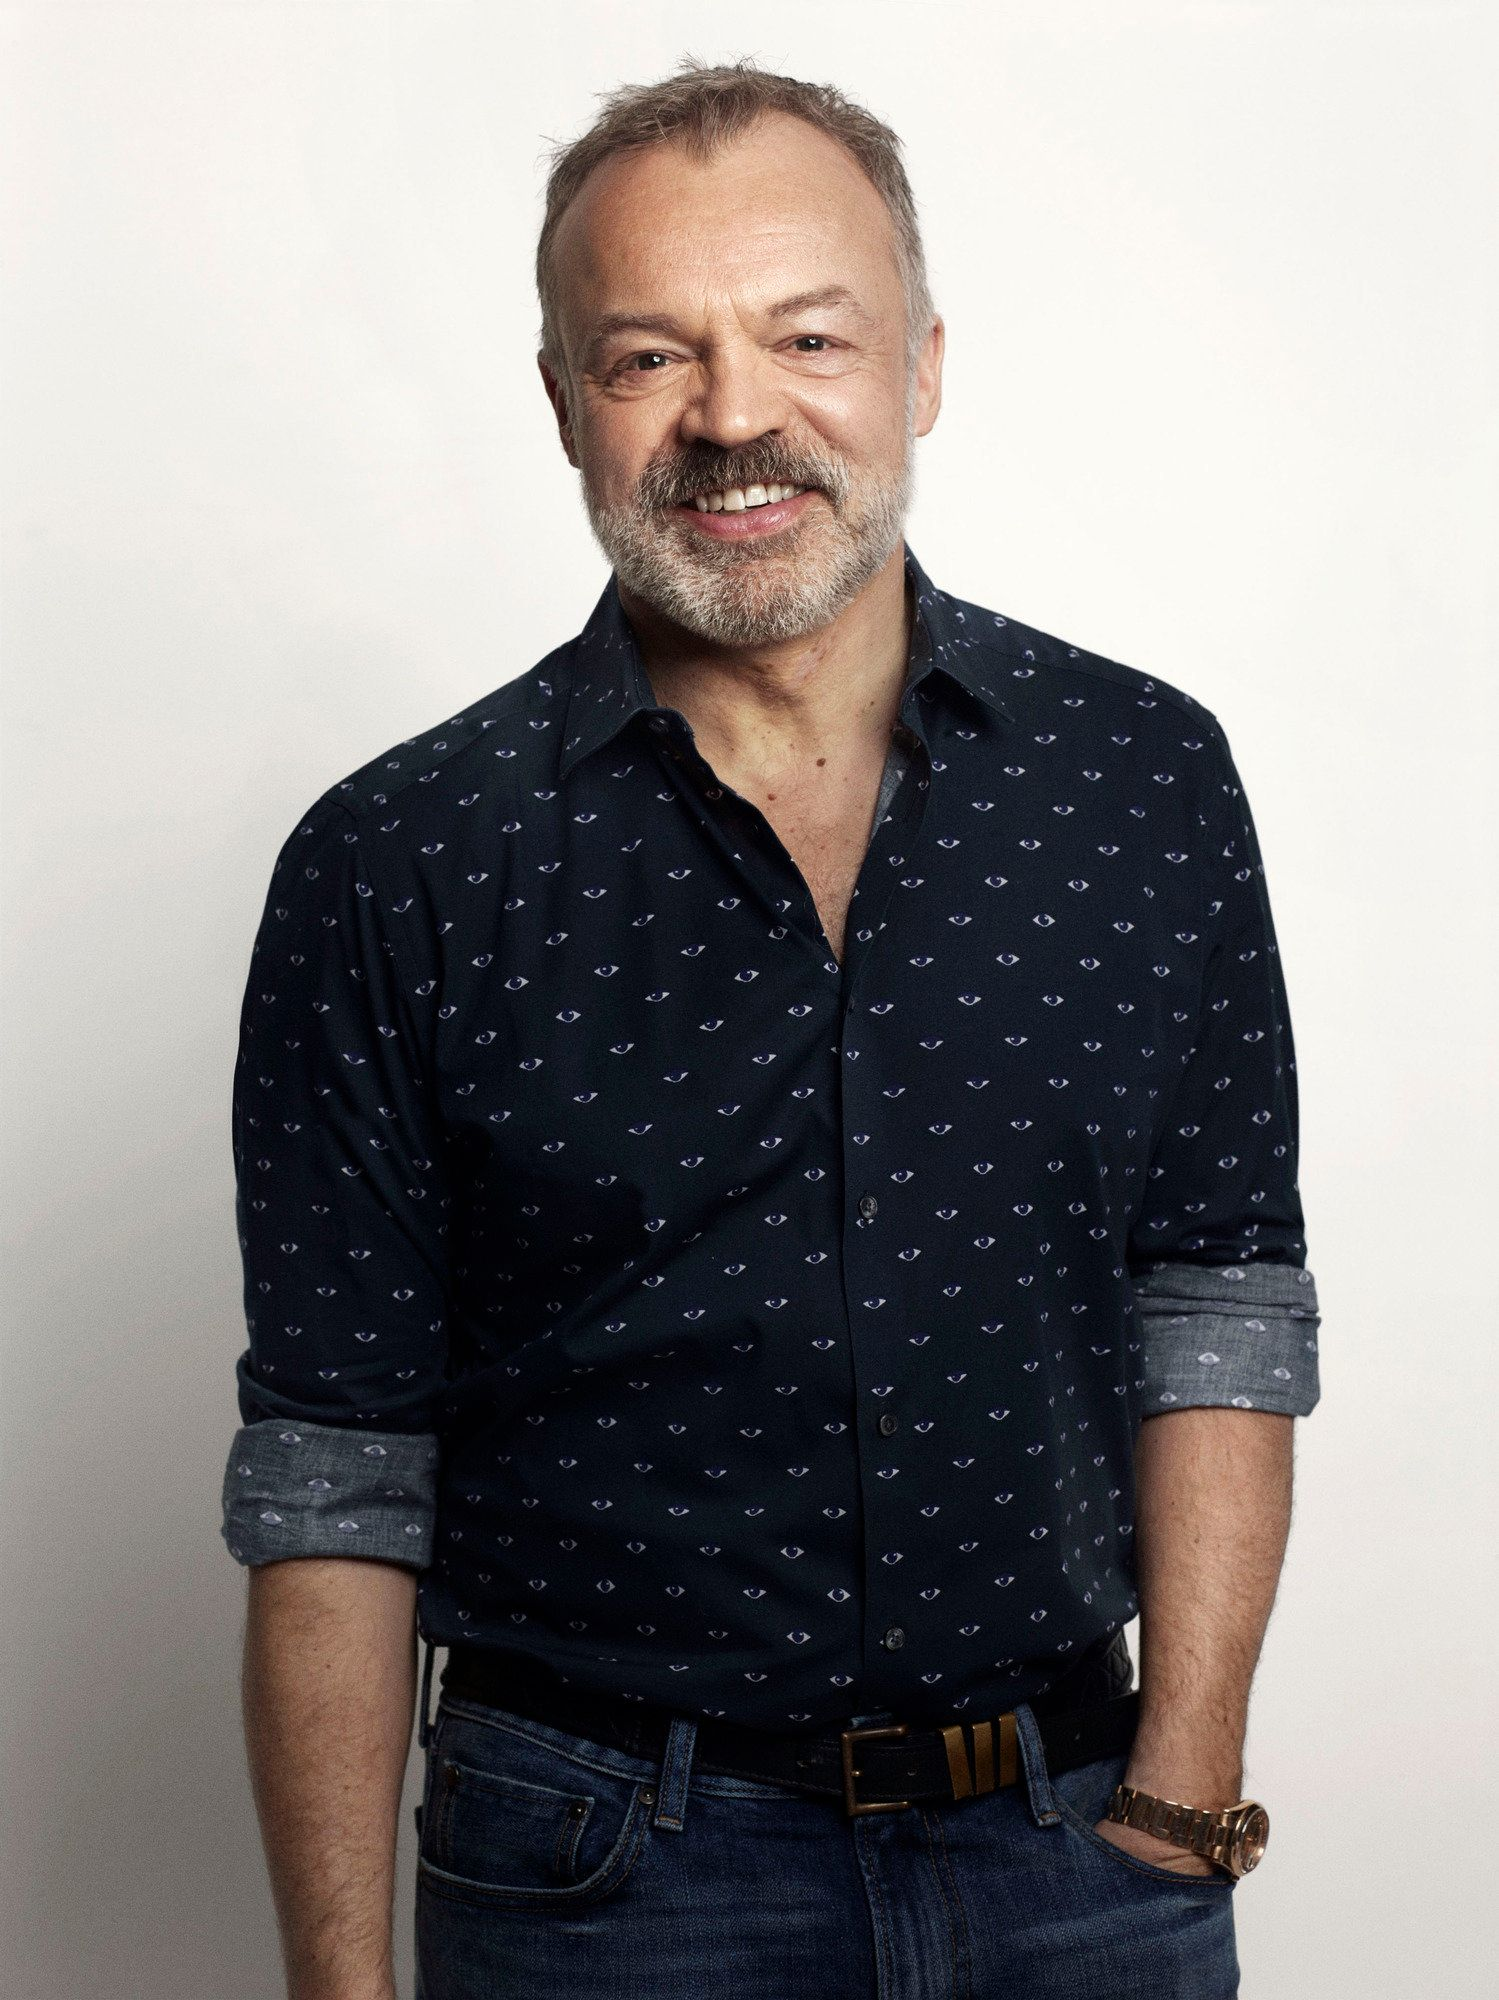 Graham Norton Hits Out At 'Pathetic' Requirement To Reveal Salaries Of BBC's Highest